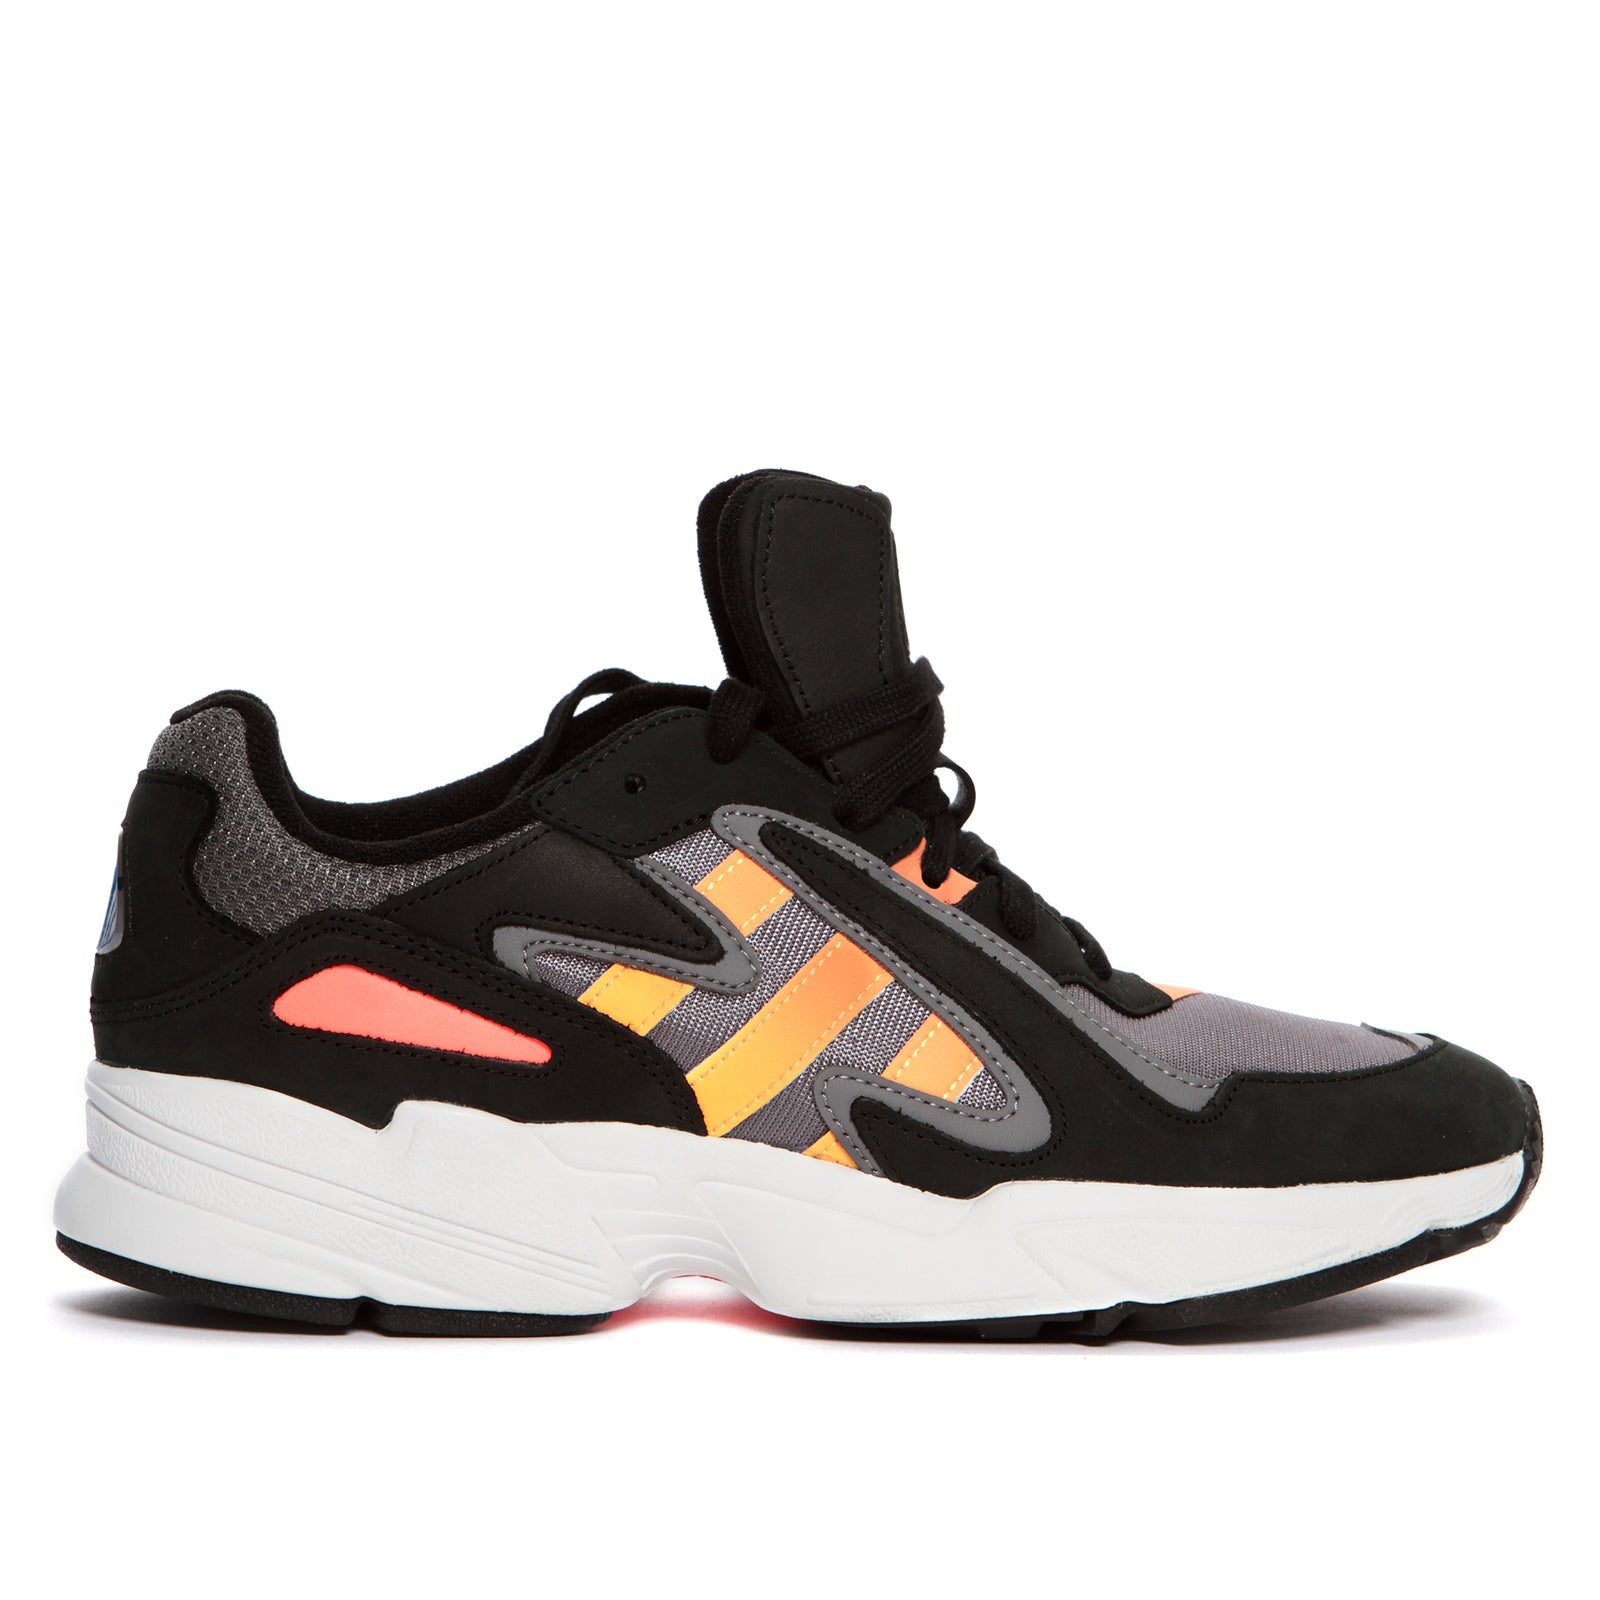 Adidas Originals Yung-96 Chasm Shoes